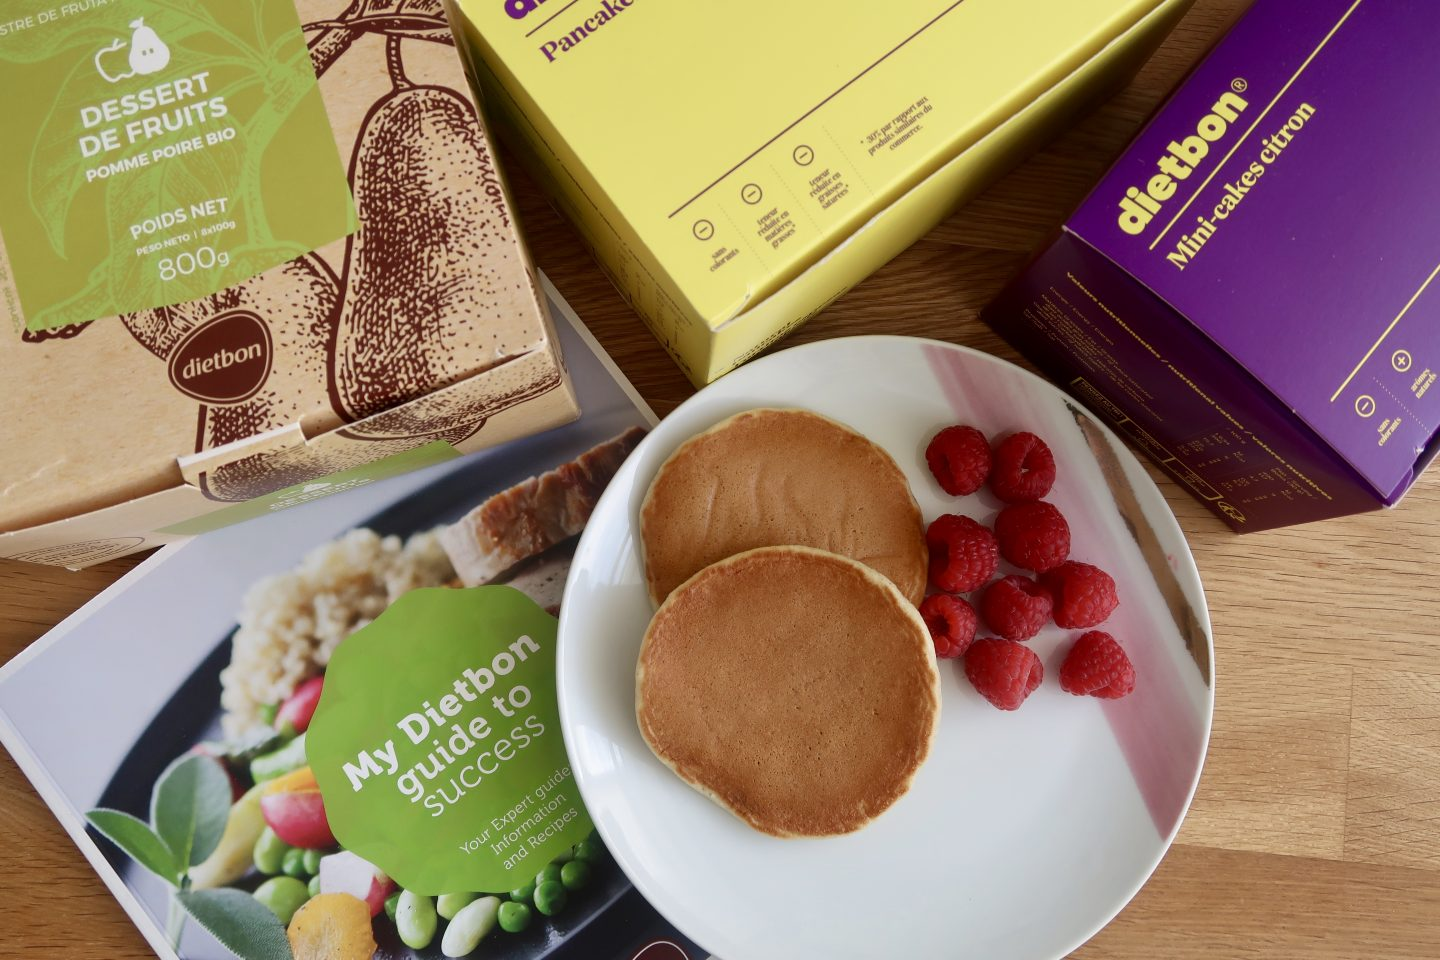 A plate of pancakes and raspberries surrounded by packaging for Dietbon meal delivery foods